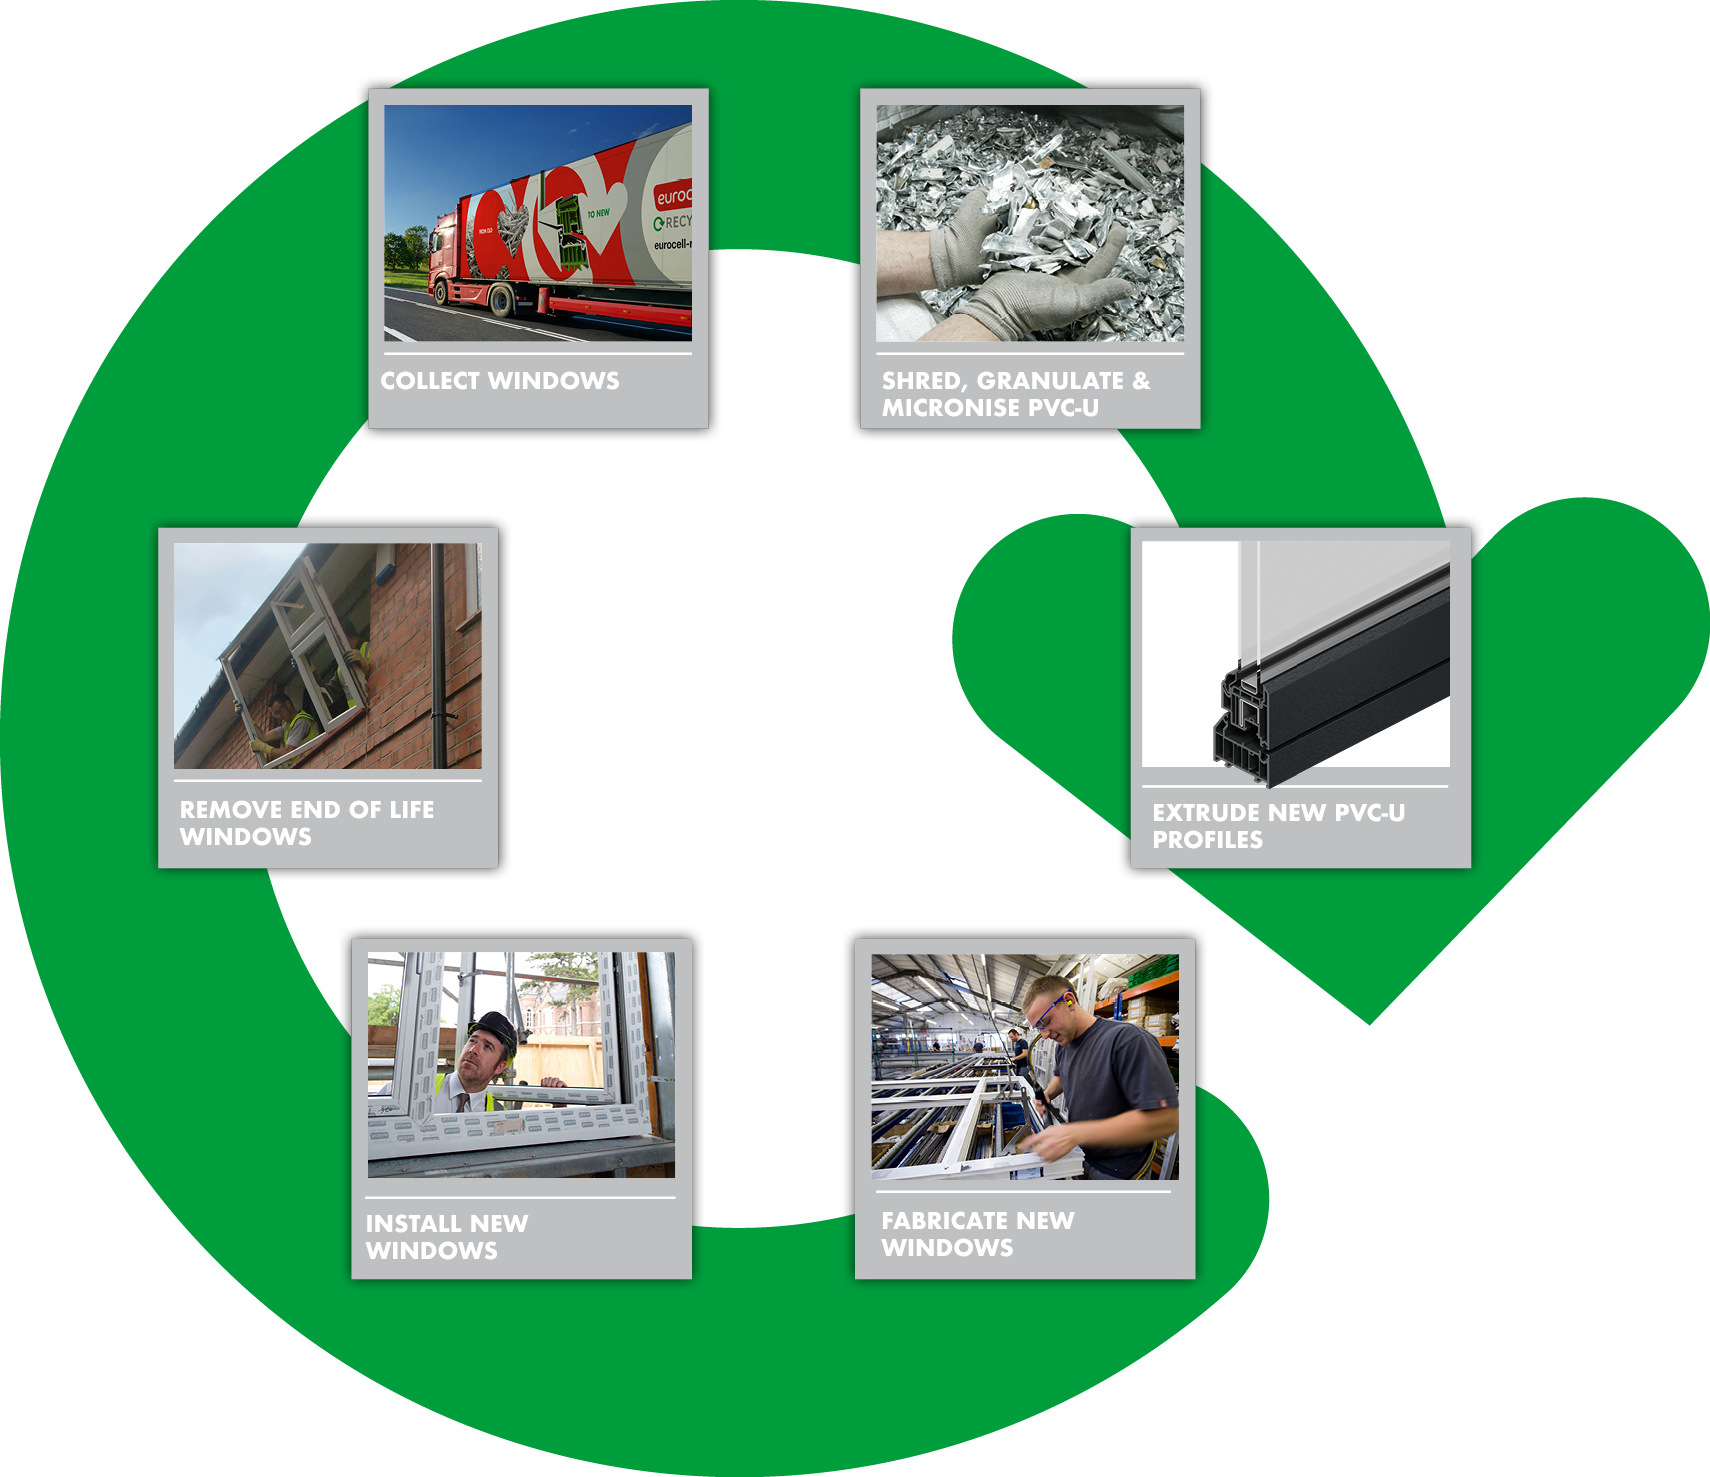 closed loop recycling of UPVC products